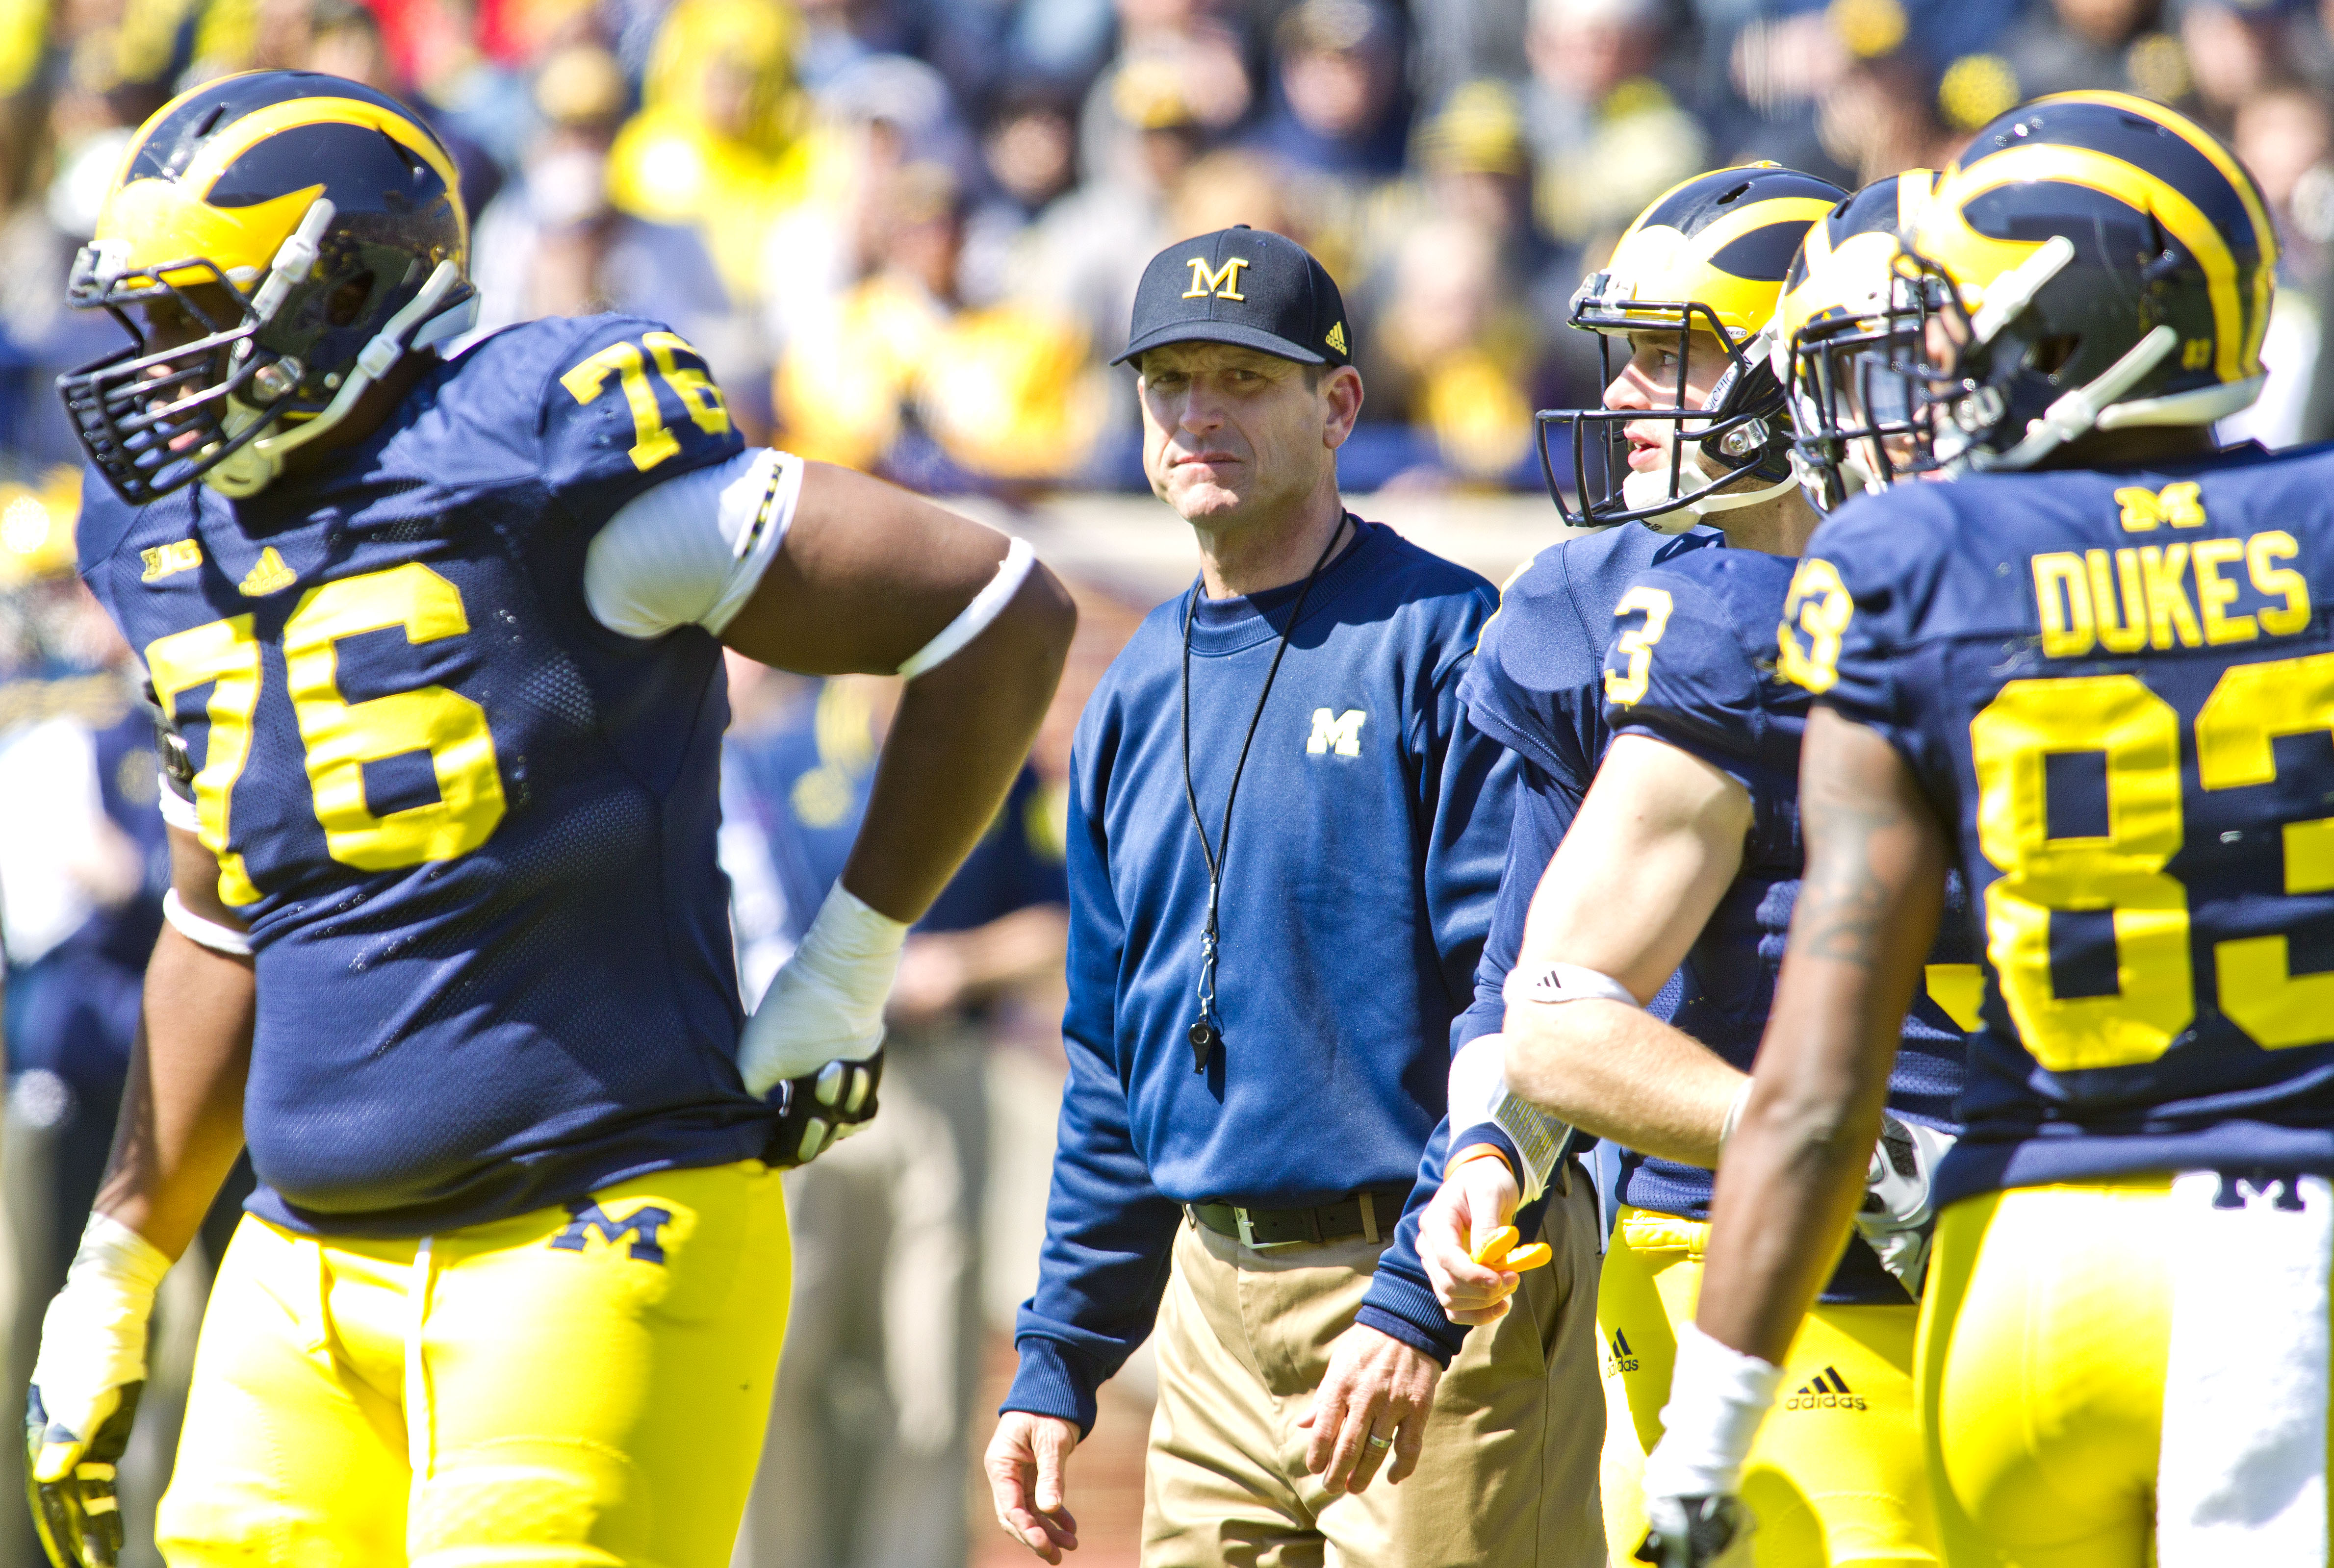 Michigan head coach Jim Harbaugh stands on the field amongst his players between downs during the NCAA college football team's spring game in Ann Arbor, Mich., Saturday, April 4, 2015. (AP Photo/Tony Ding)